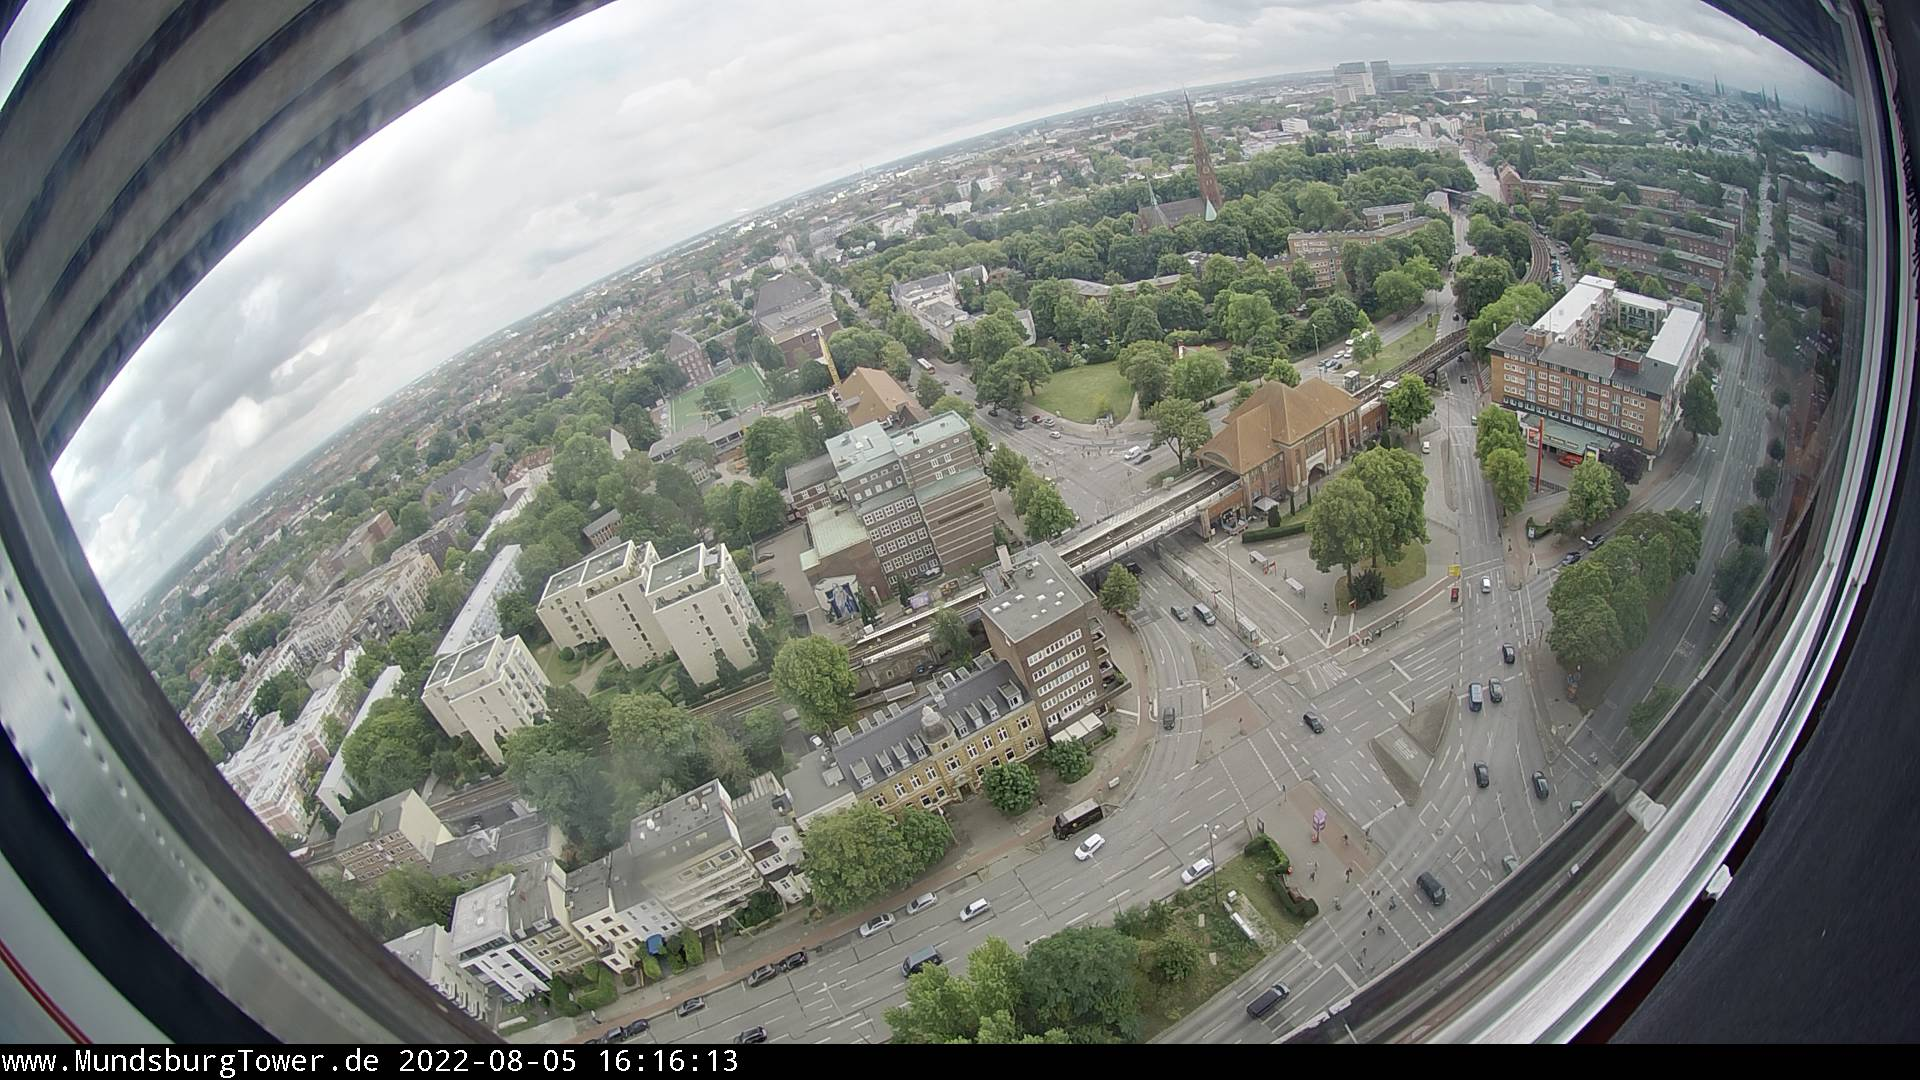 WebCam Mundsburgtower